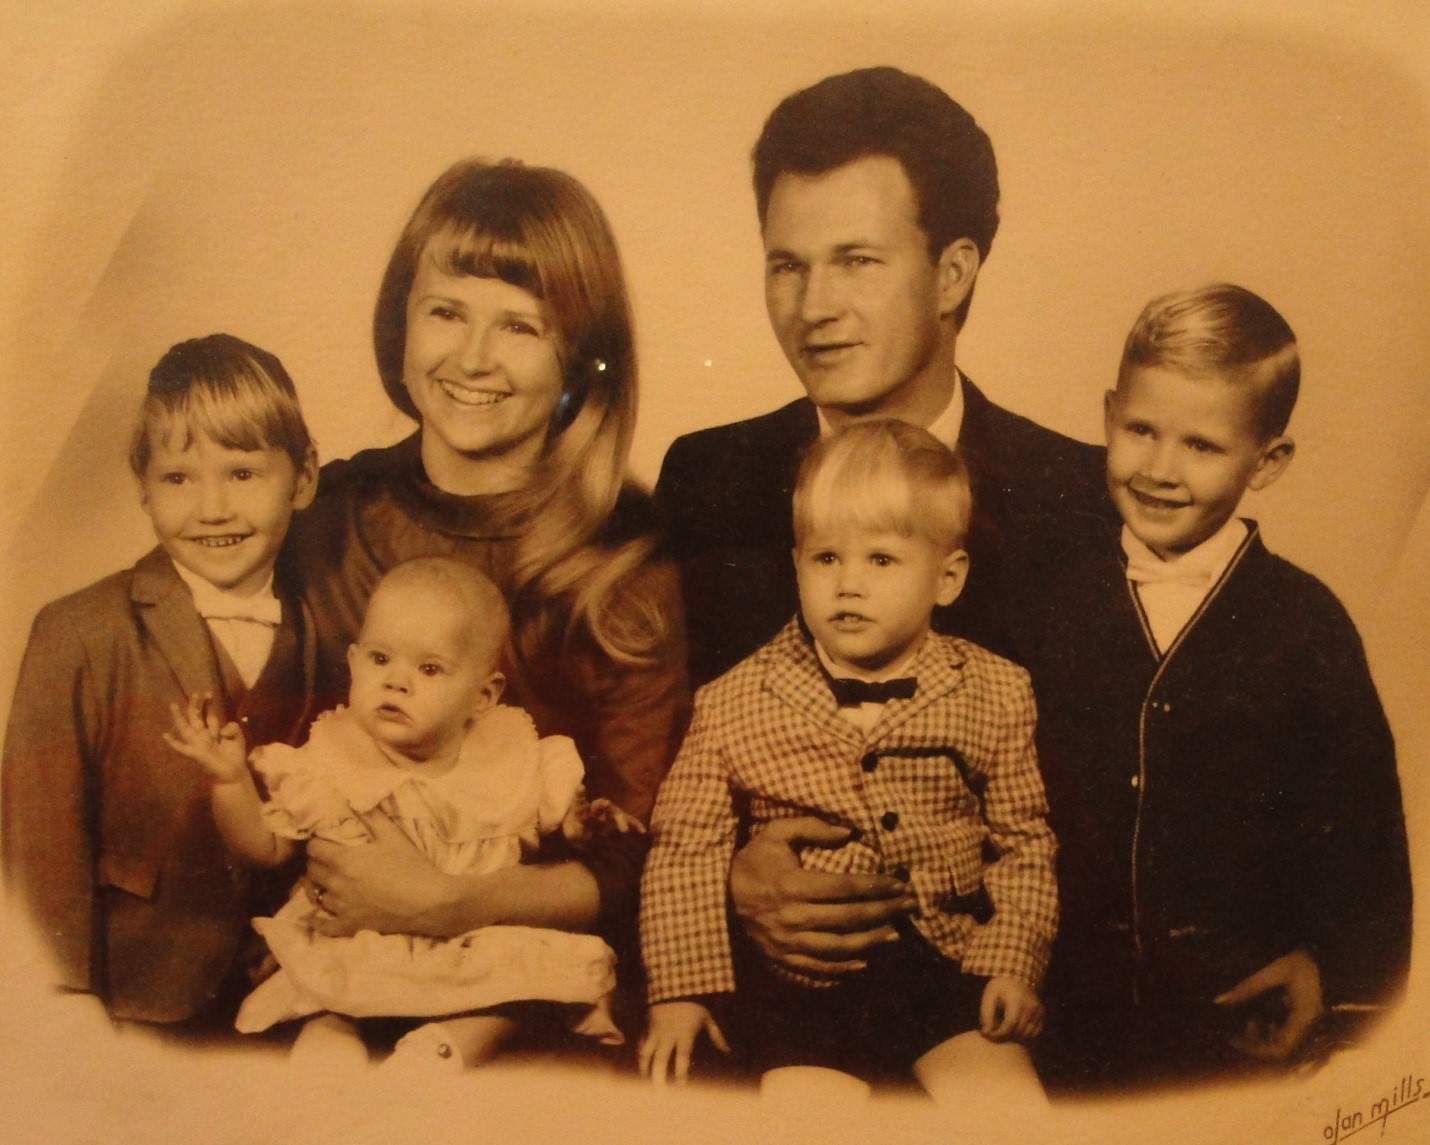 This is a picture of my mom (holding me), my dad, and my three brothers. Priceless!